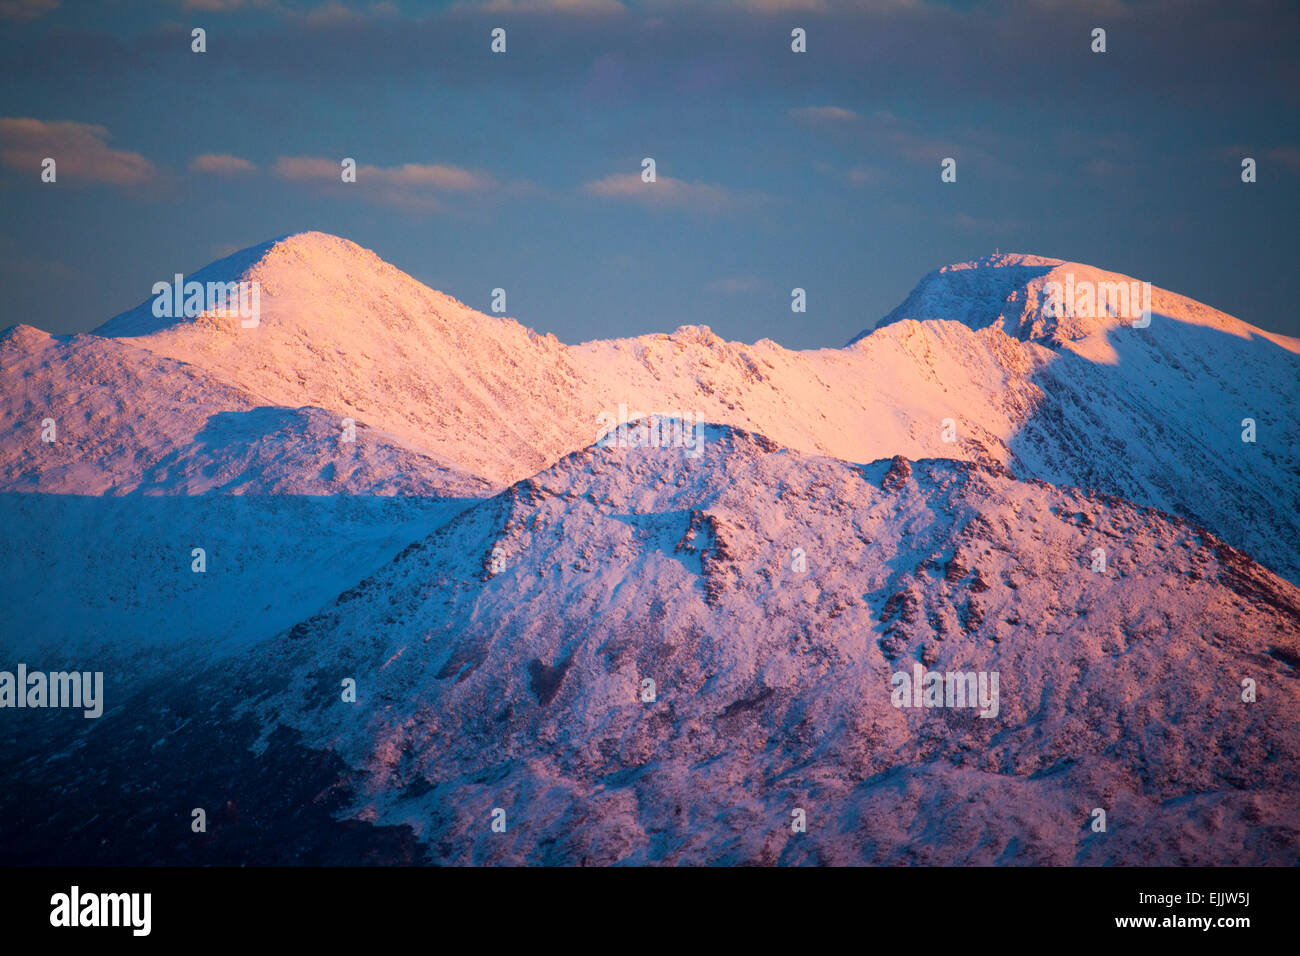 Winter evening light on Carrauntoohil, MacGillycuddy's Reeks, County Kerry, Ireland. - Stock Image